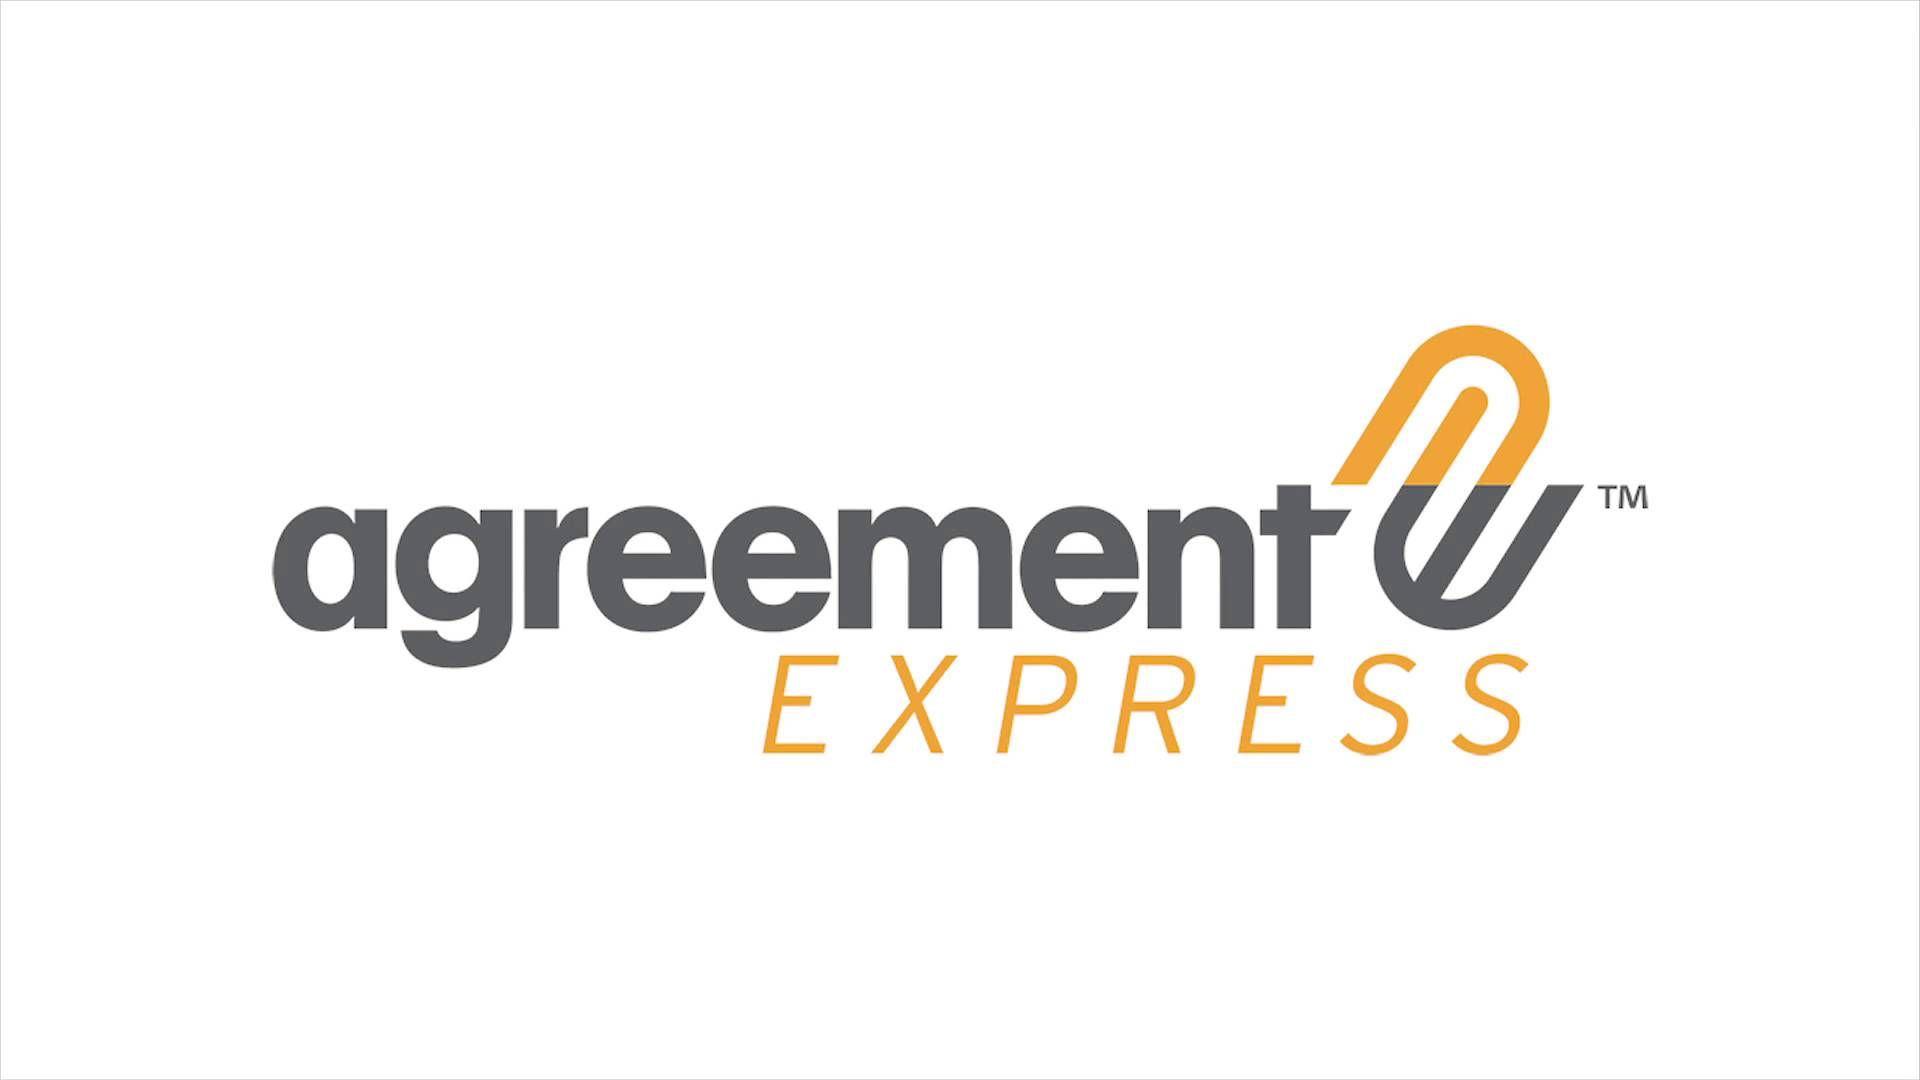 What is Agreement Express? YouTube